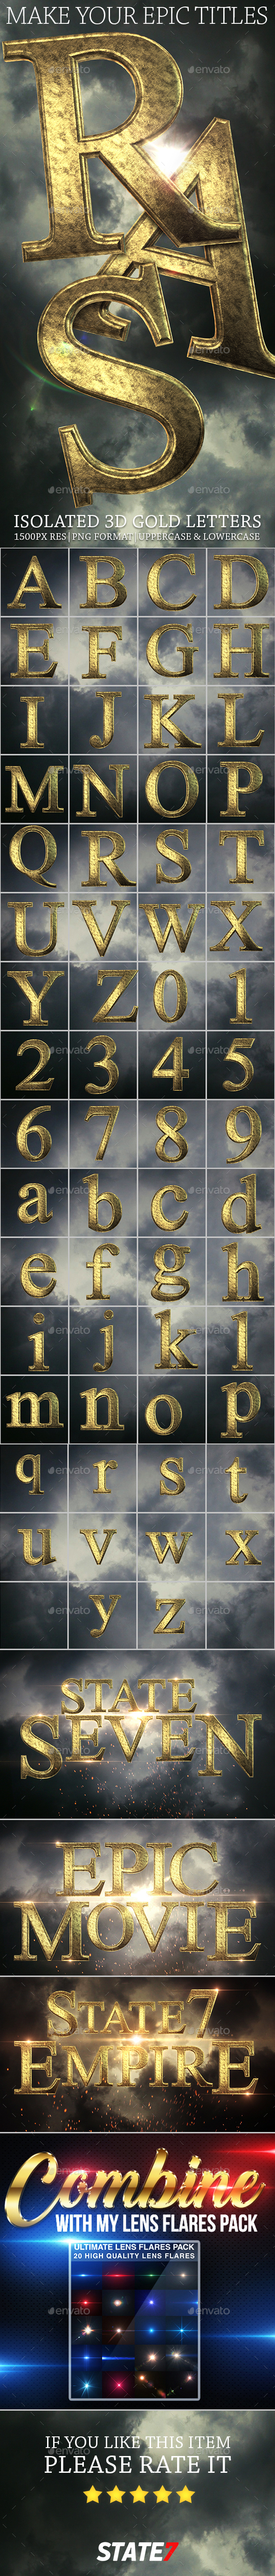 Isolated Gold Letters - Text 3D Renders